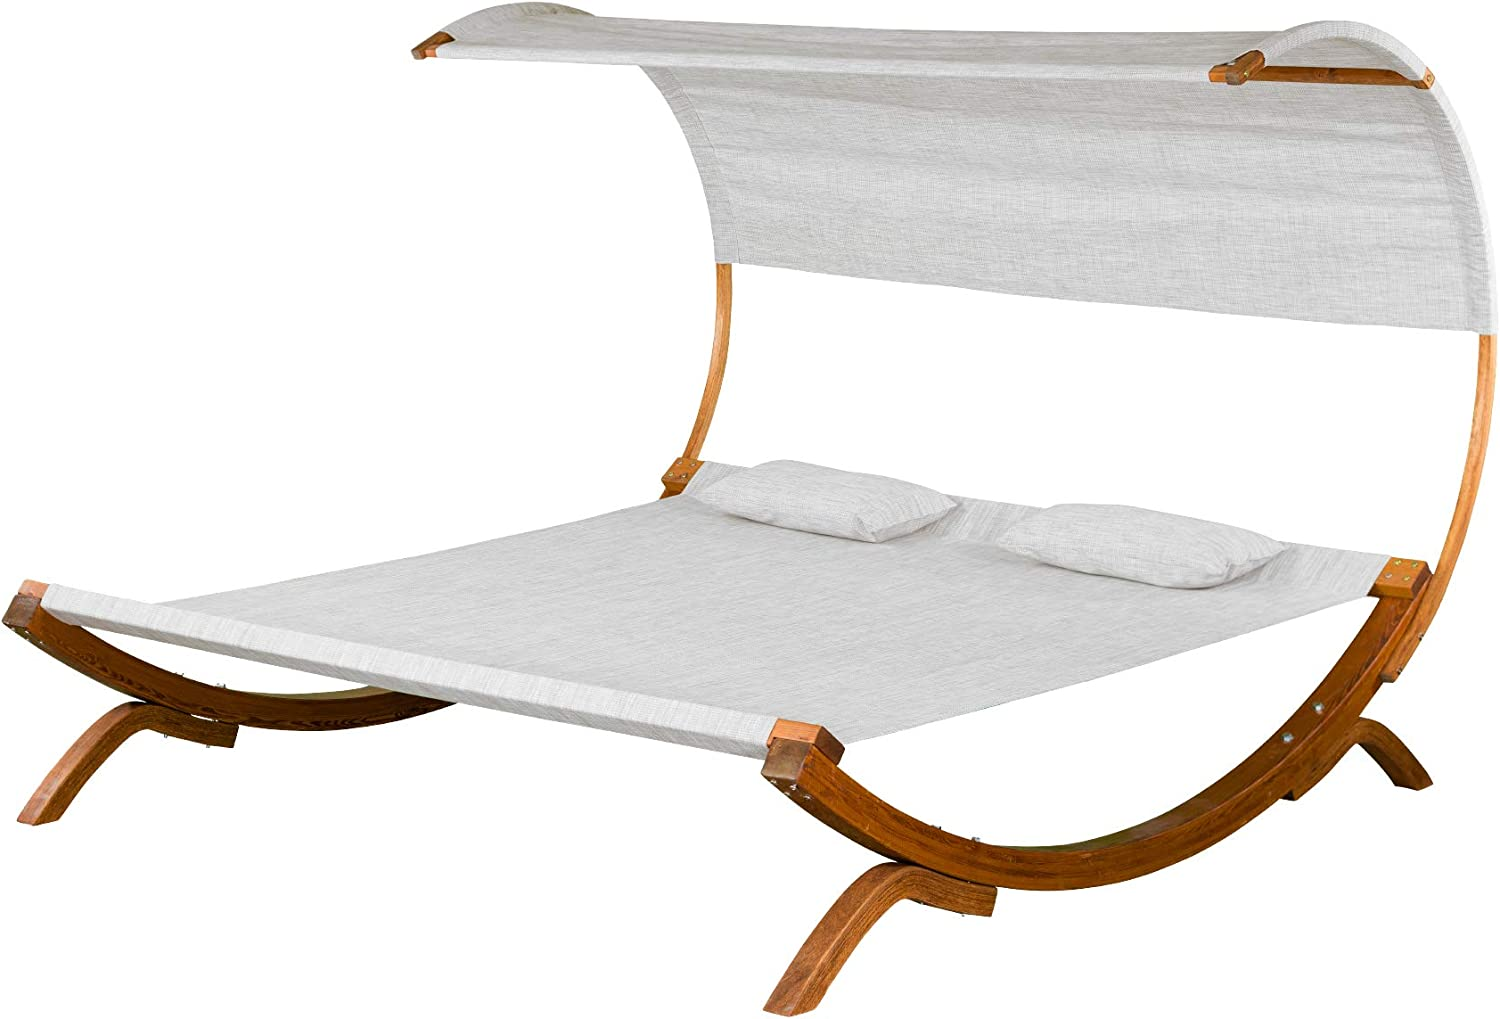 Leisure Season SNBC403 Sunbed with Canopy - 500 lbs Weight Capacity